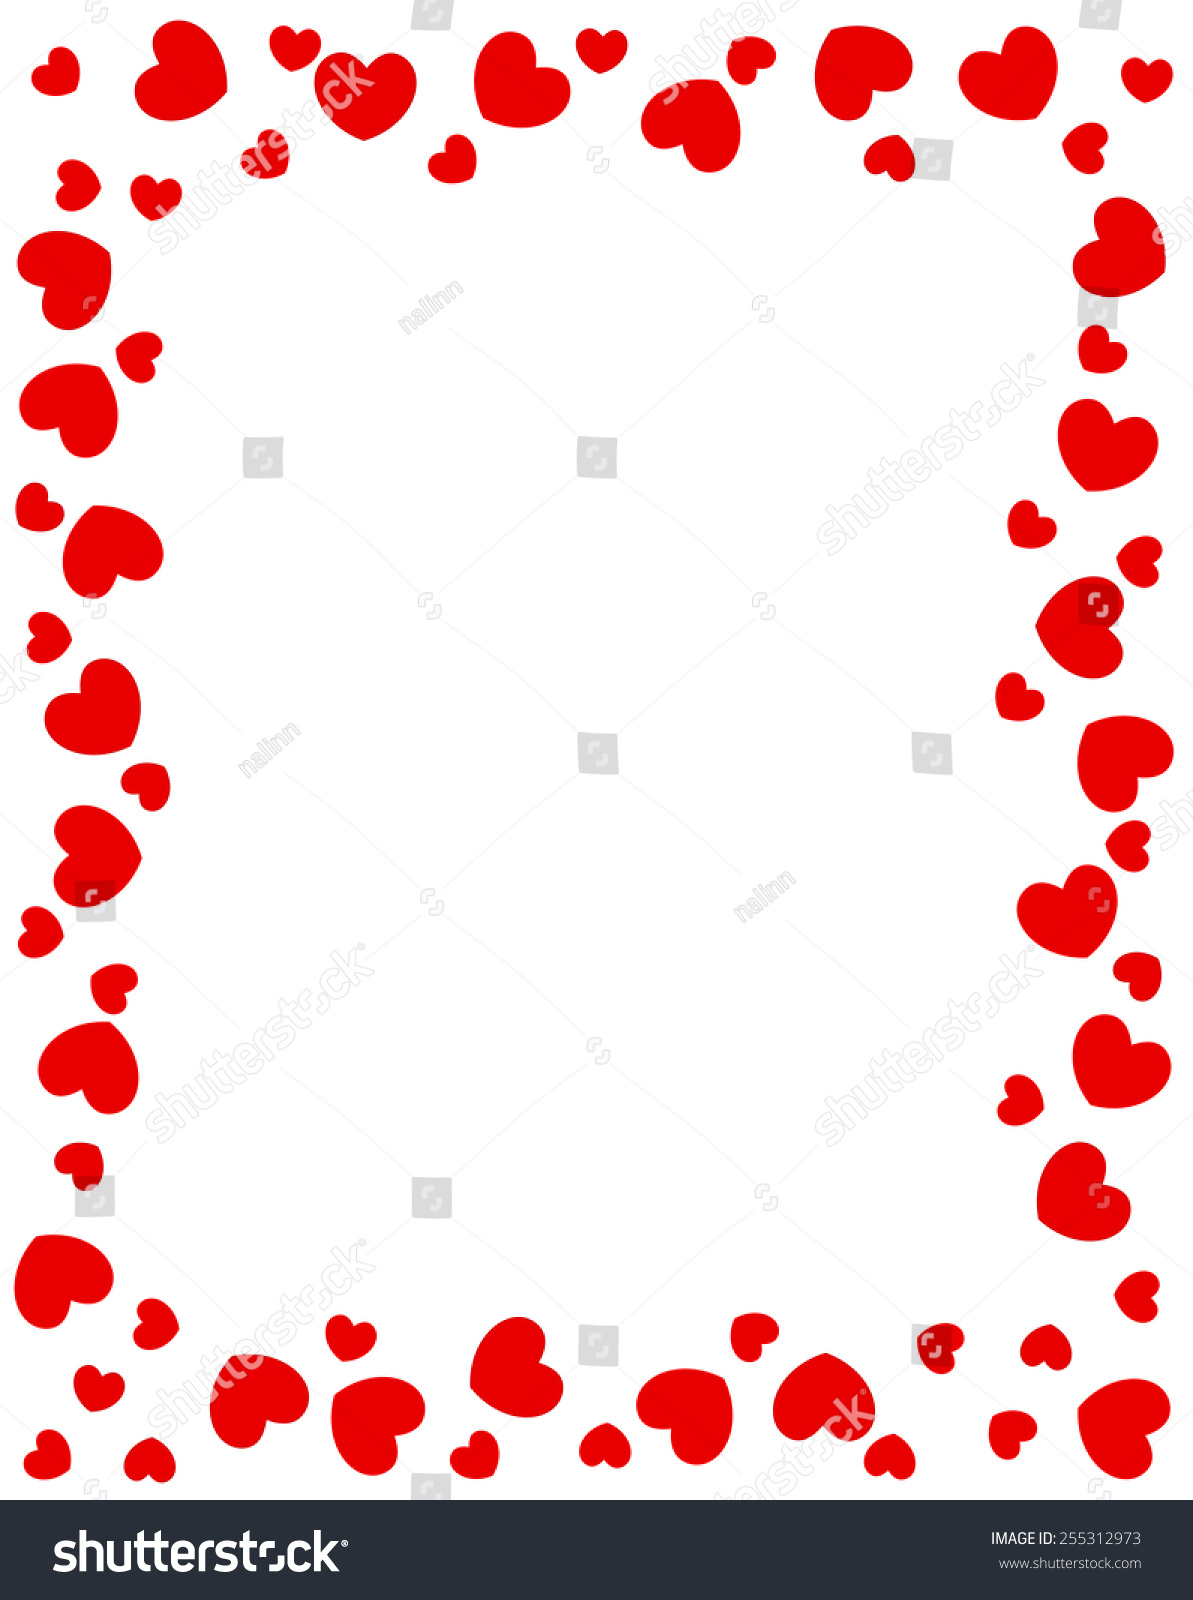 Red Hearts Border Valentines Day Designs Stock Vector Royalty Free